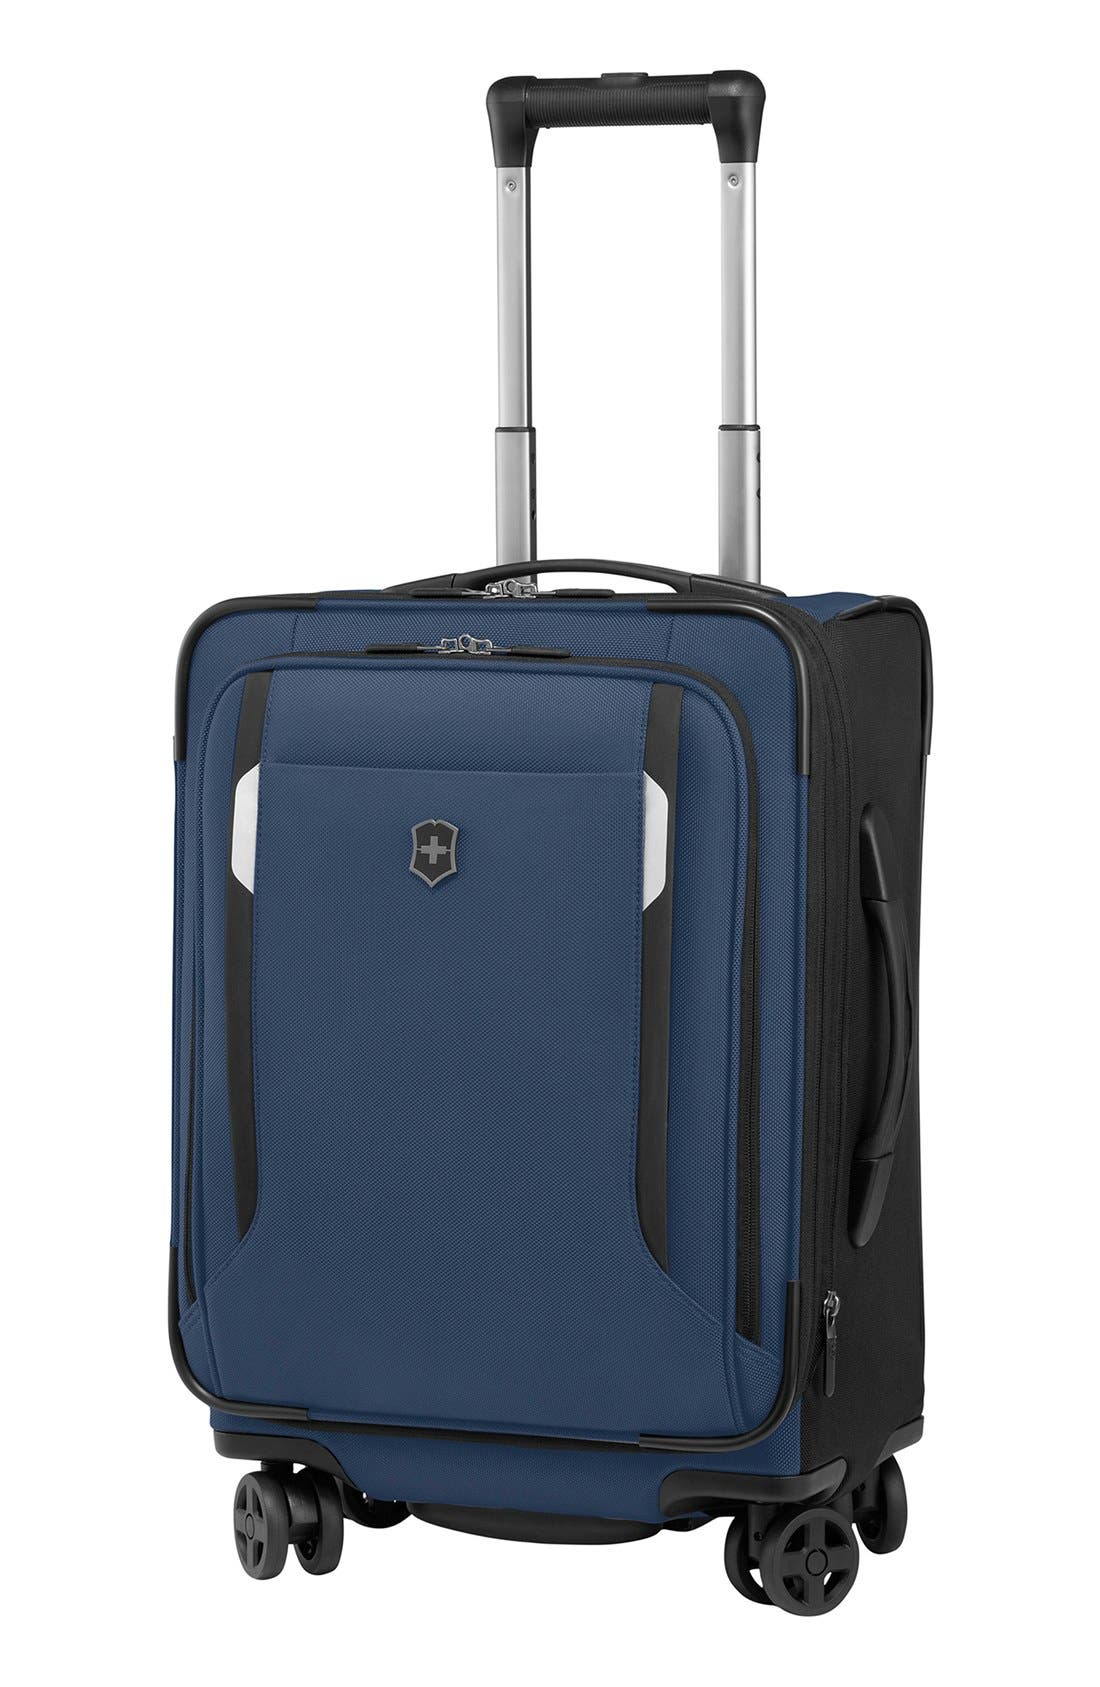 WT 5.0 Dual Caster Wheeled 20-Inch Carry-On,                         Main,                         color, 420